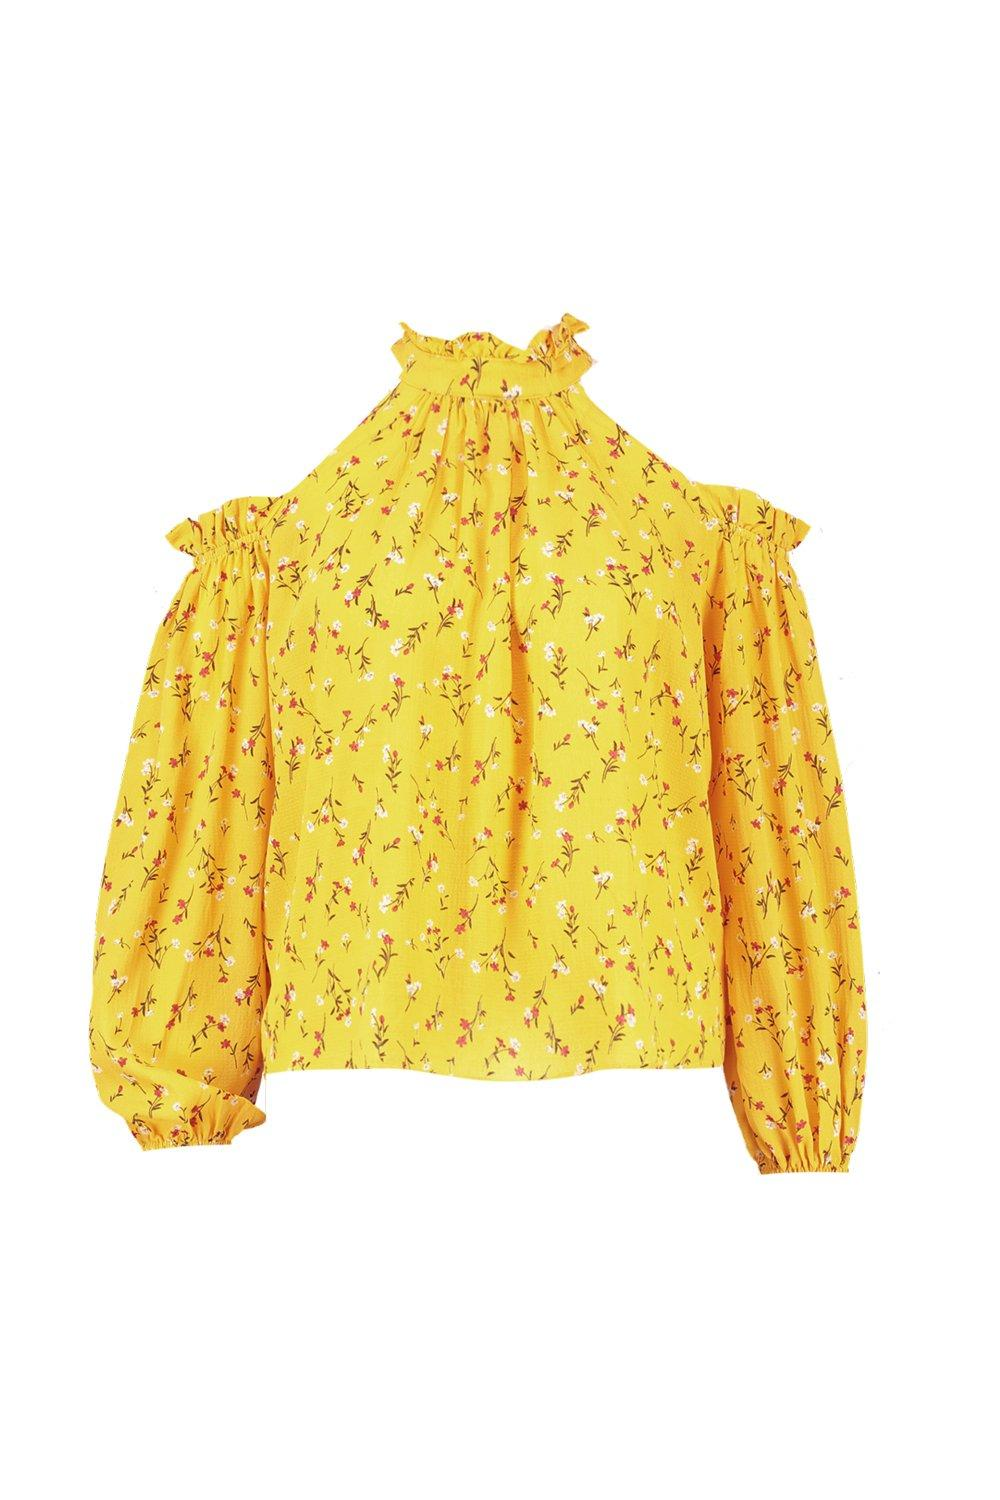 Top Shoulder Plus Floral yellow Ruffle Cold wvn6q4Rp